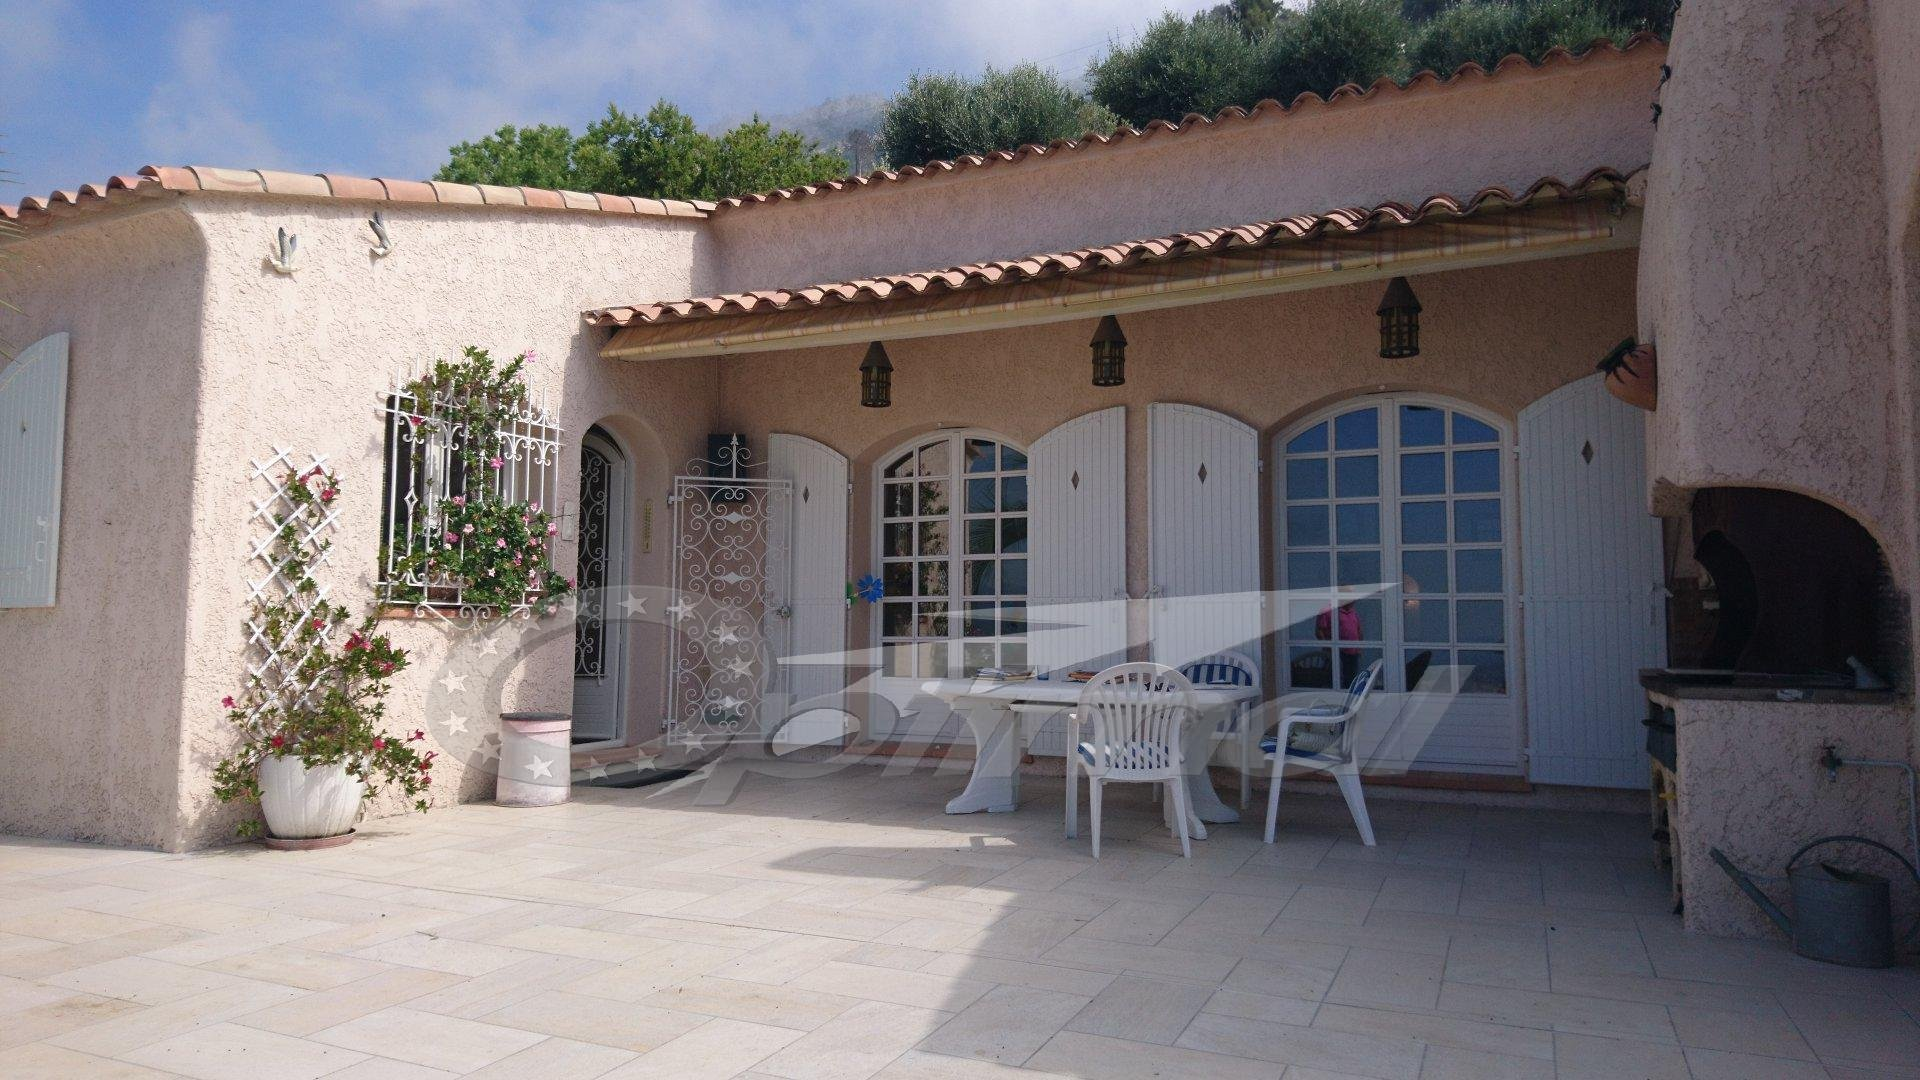 VILLA 250 M² WITH SWIMMING POOL, SEA VIEW